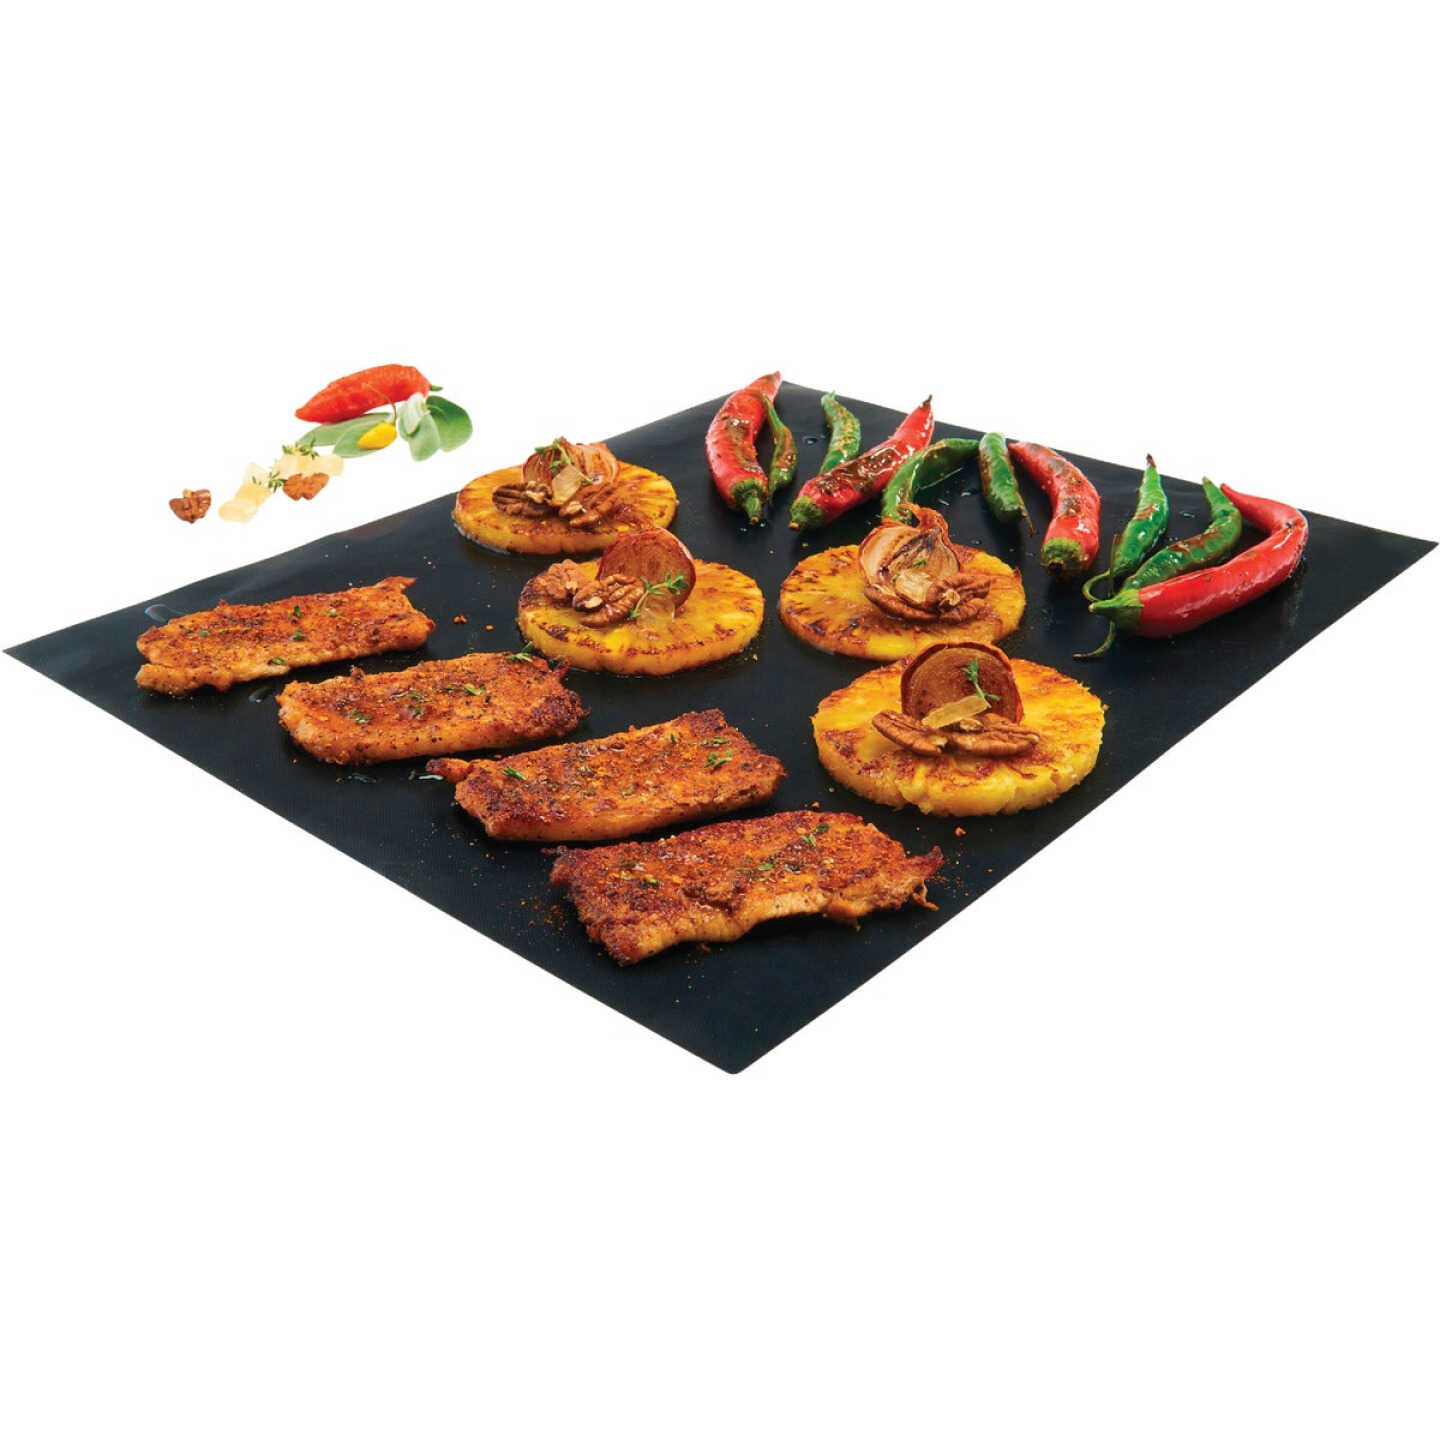 GrillPro 15.75 In. W. x 13 In. L. Non-Stick Cooking Mat (2-Pack) Image 4